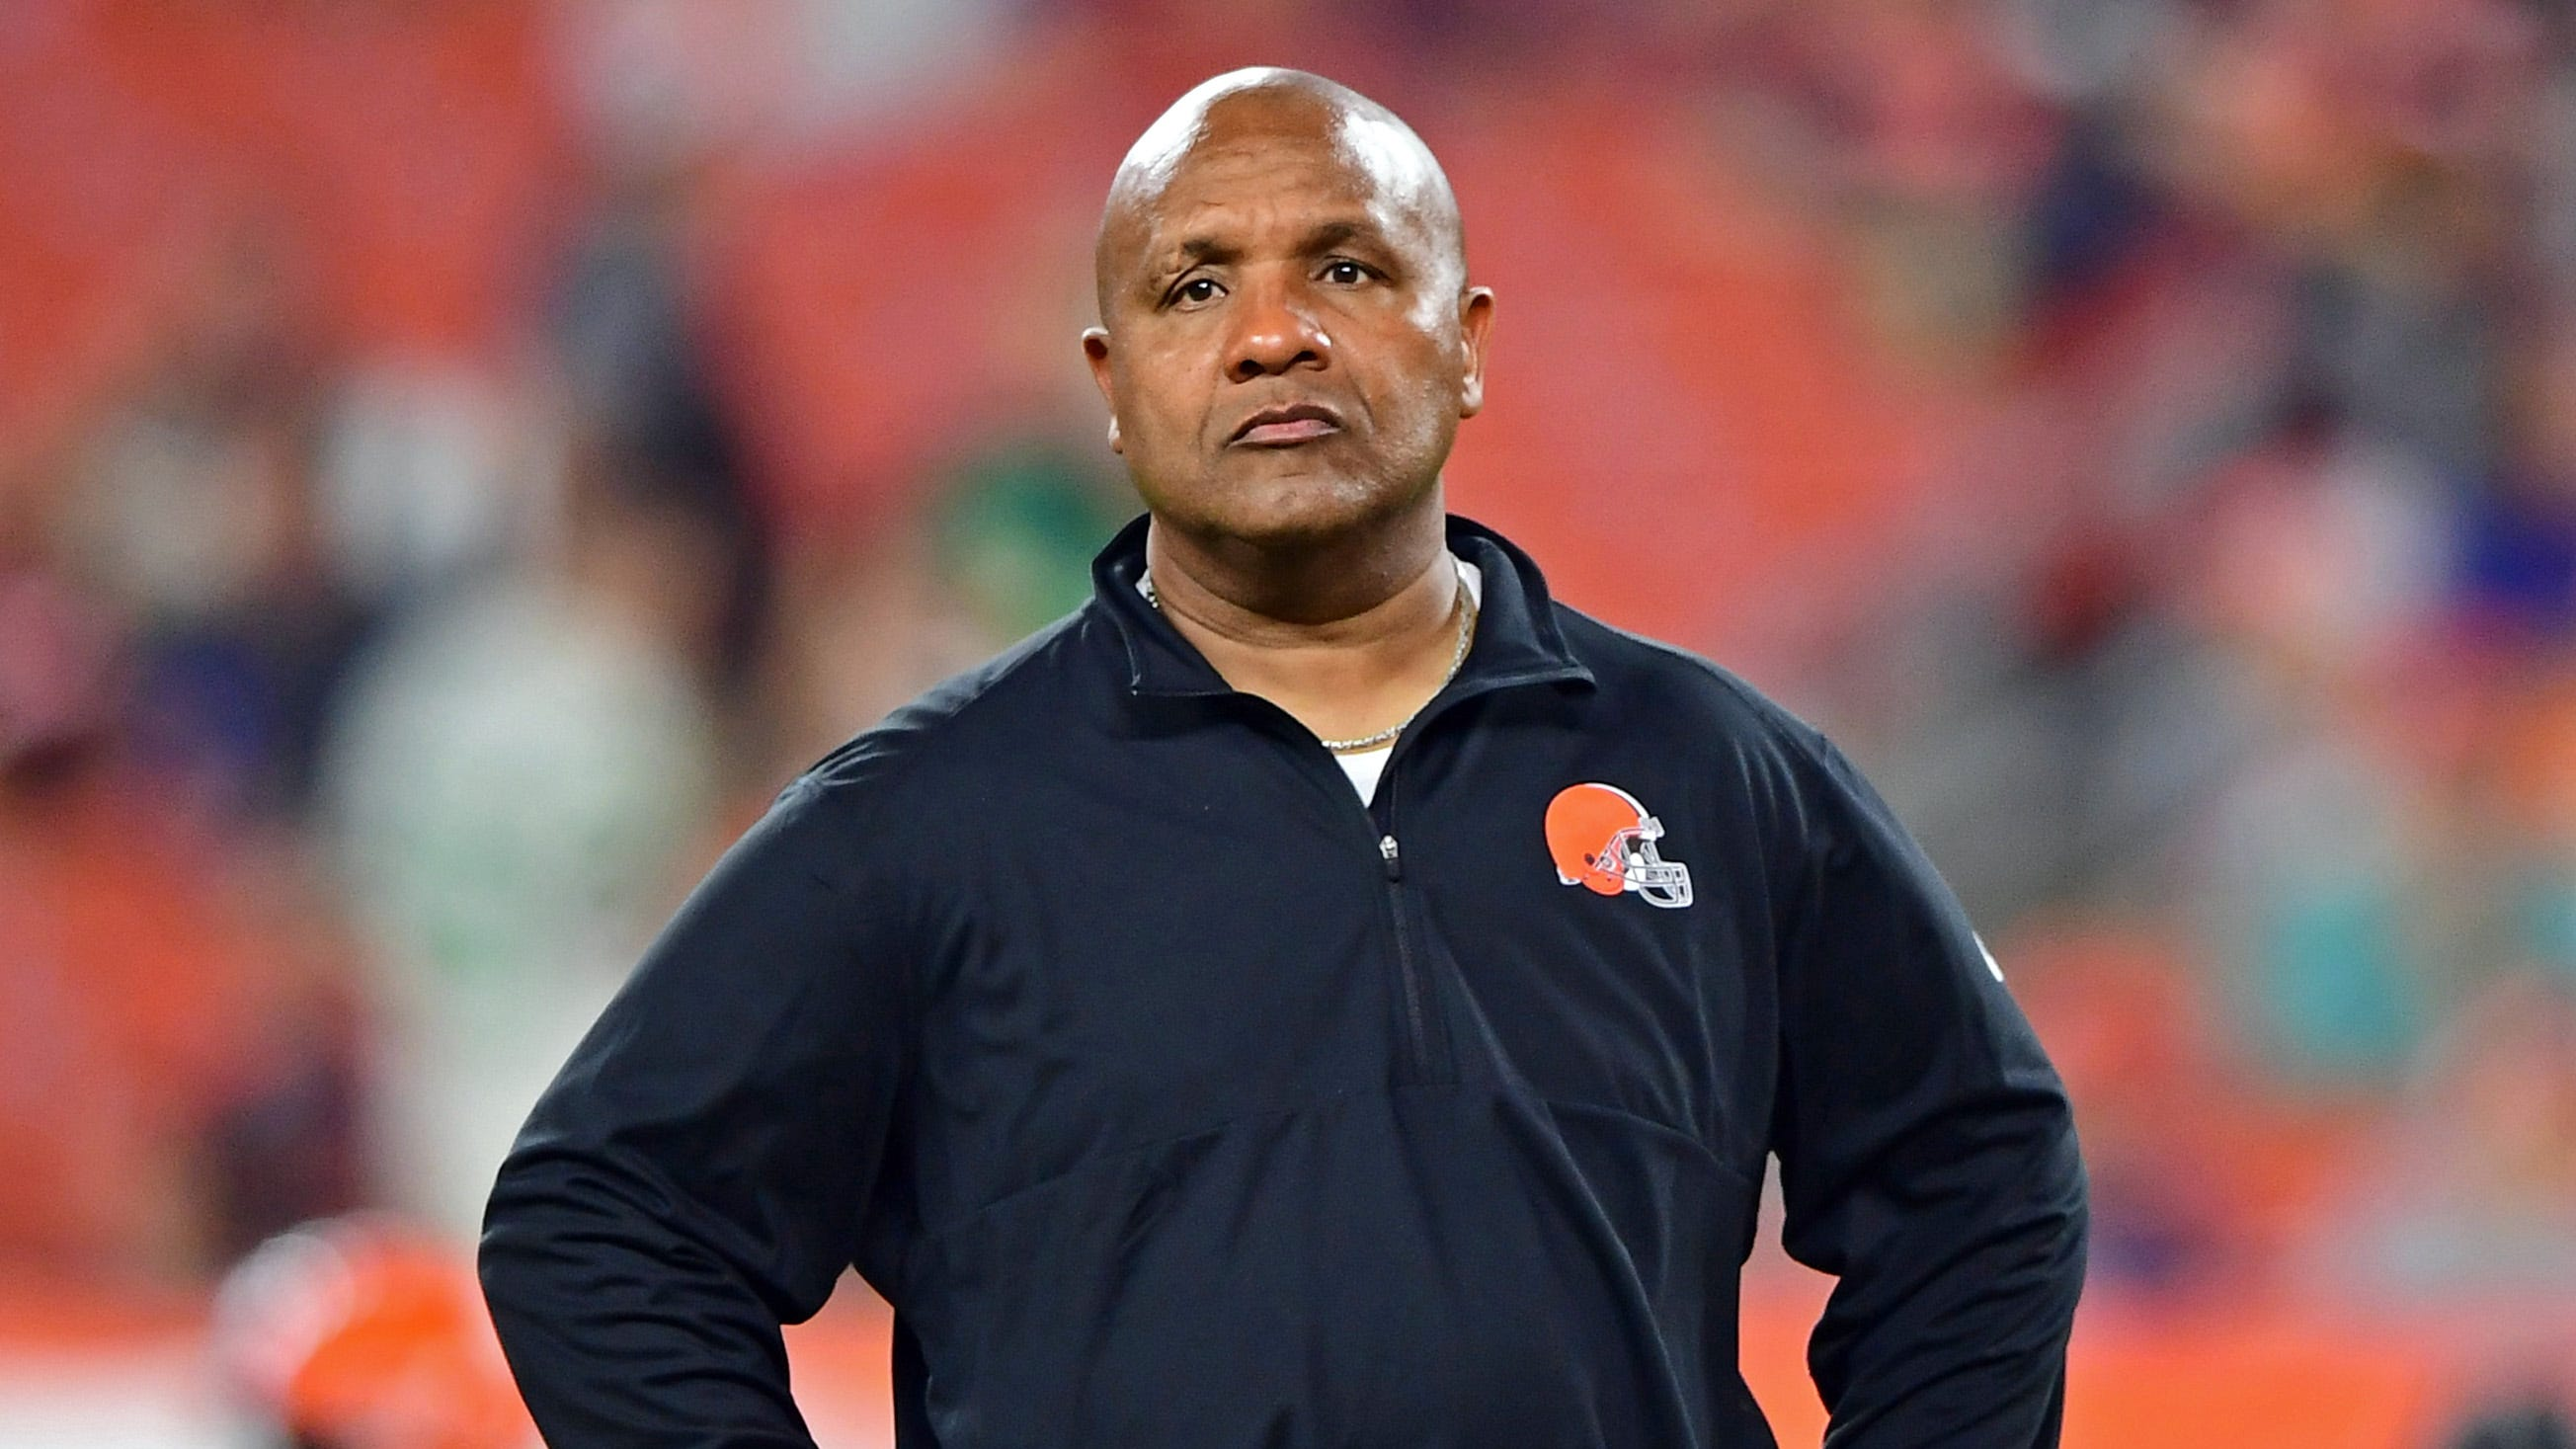 13 NFL groups have resolved to visit ; Hue Jackson to lead Colin Kaepernick workout